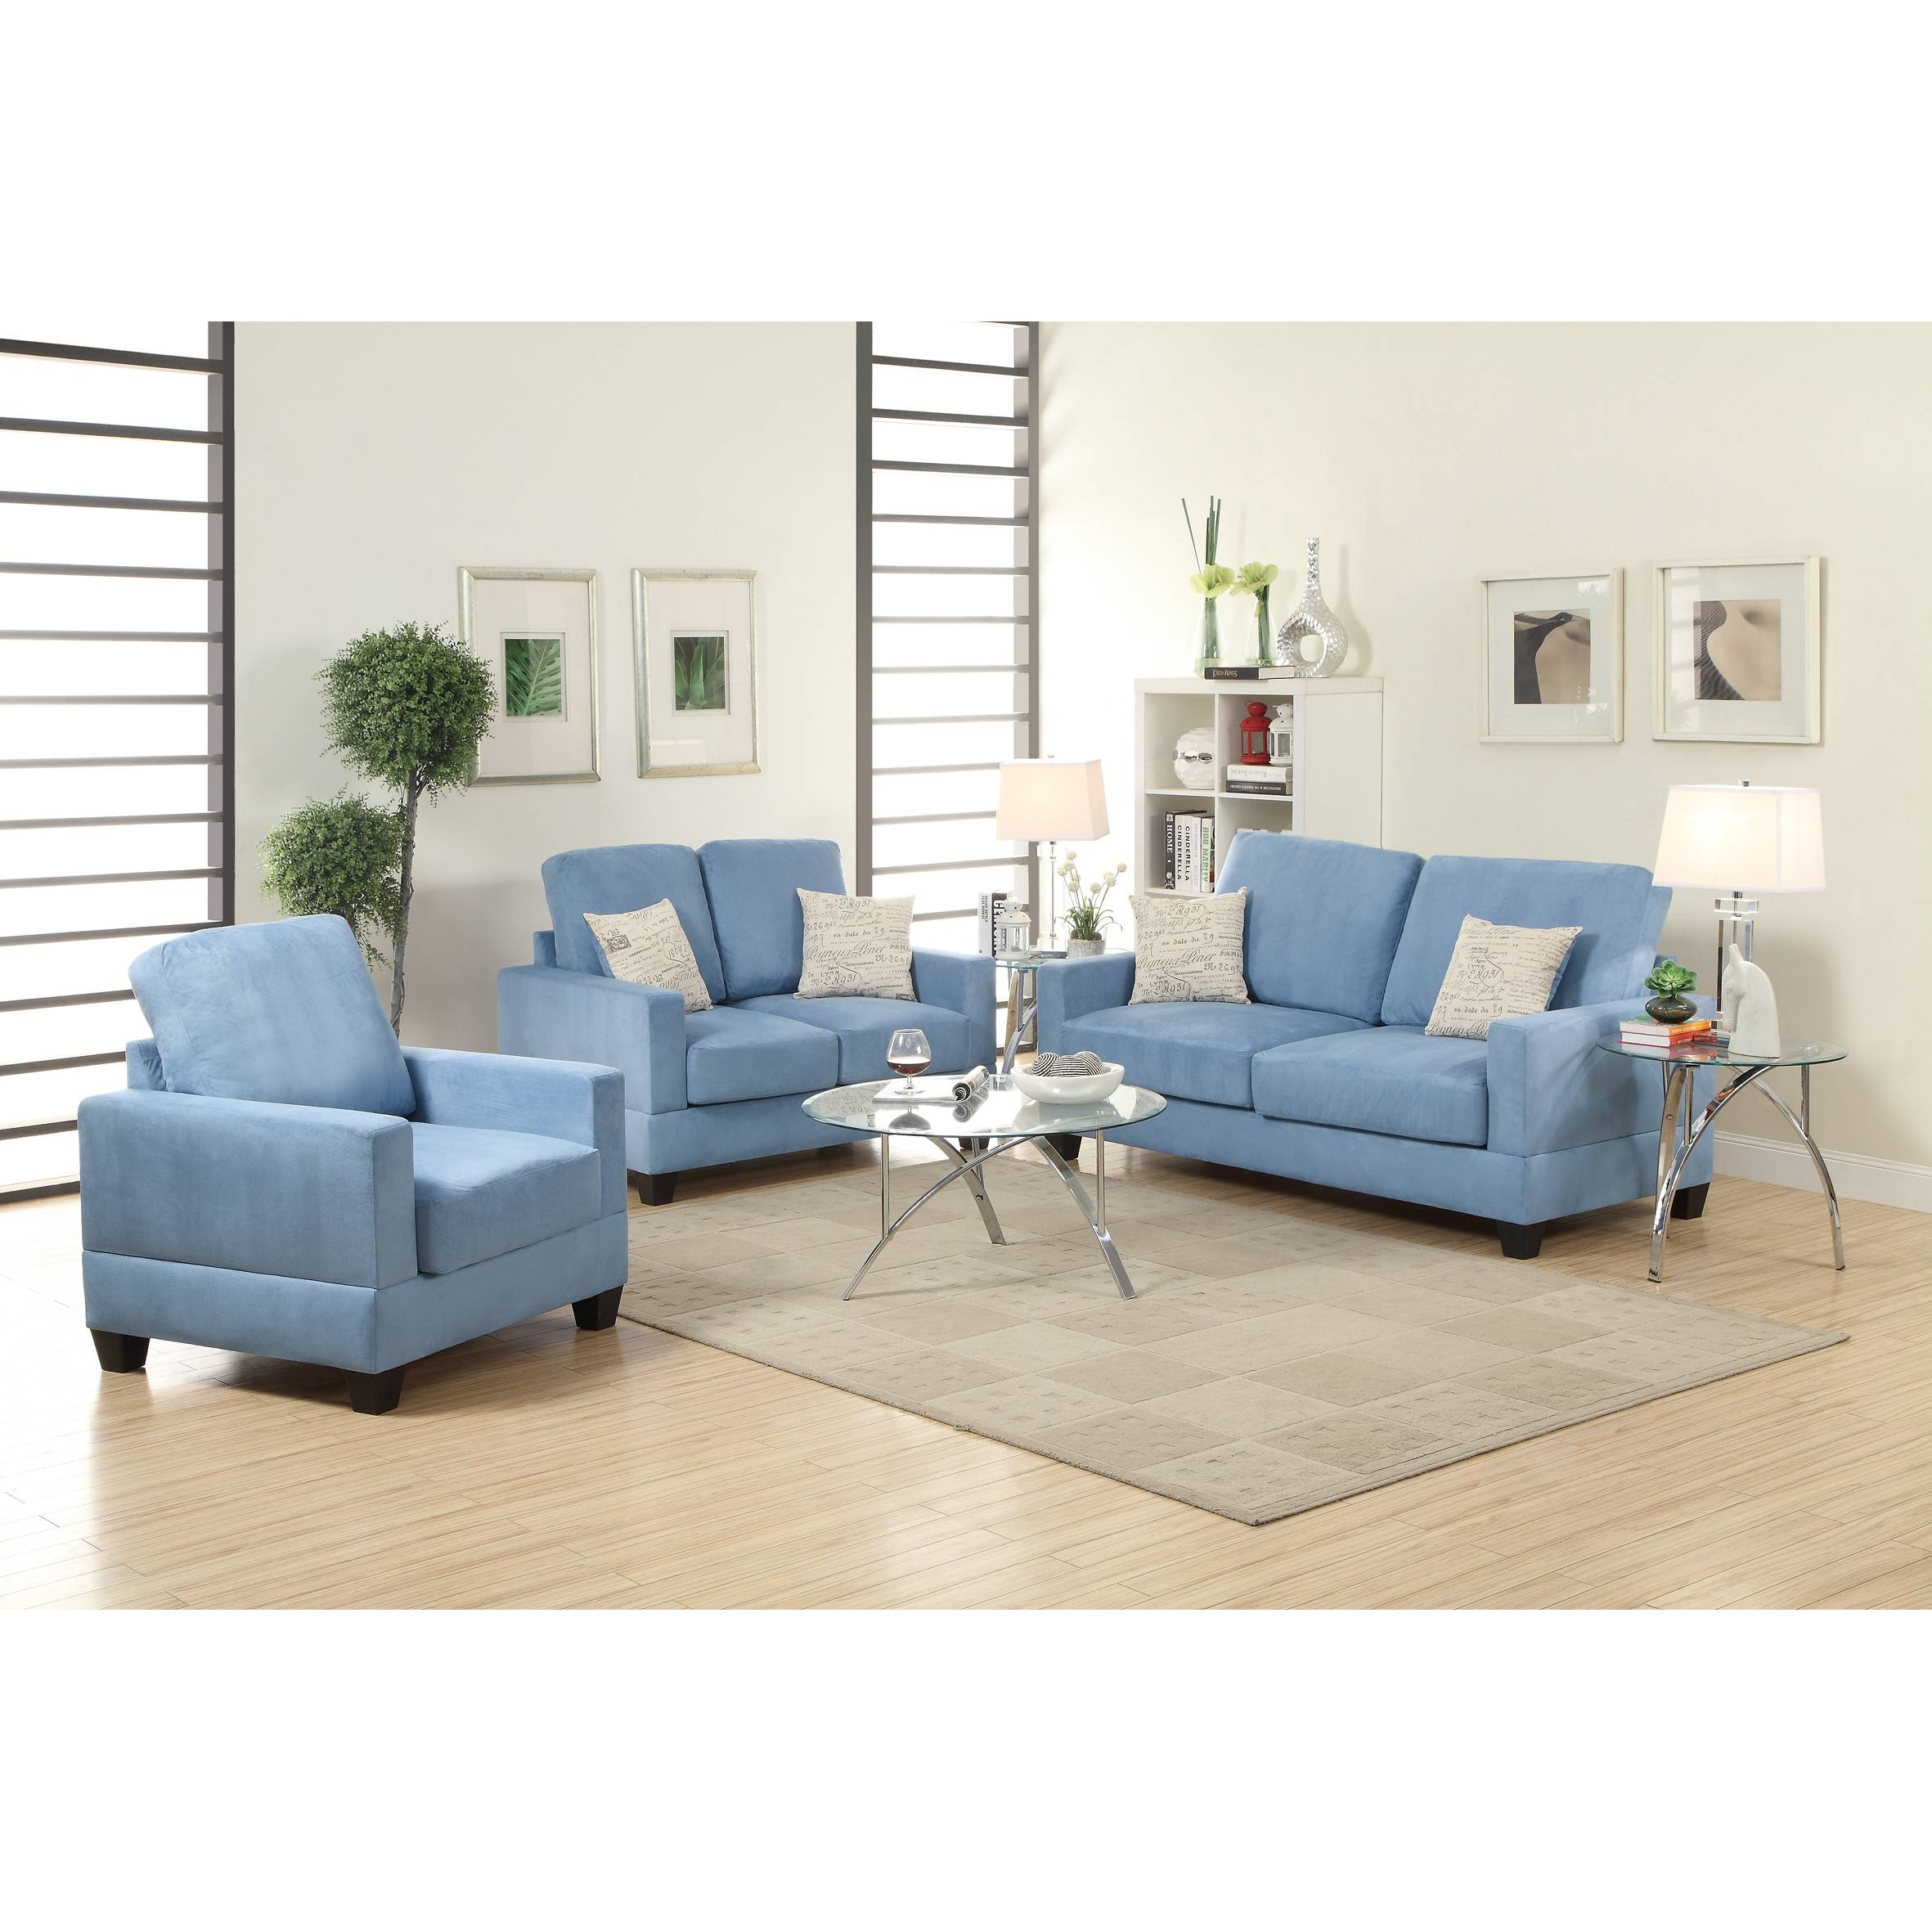 Leather Sofas Wayfair Havana Paris Grain Sofa ~ Loversiq inside Condo Size Sofas (Image 10 of 15)